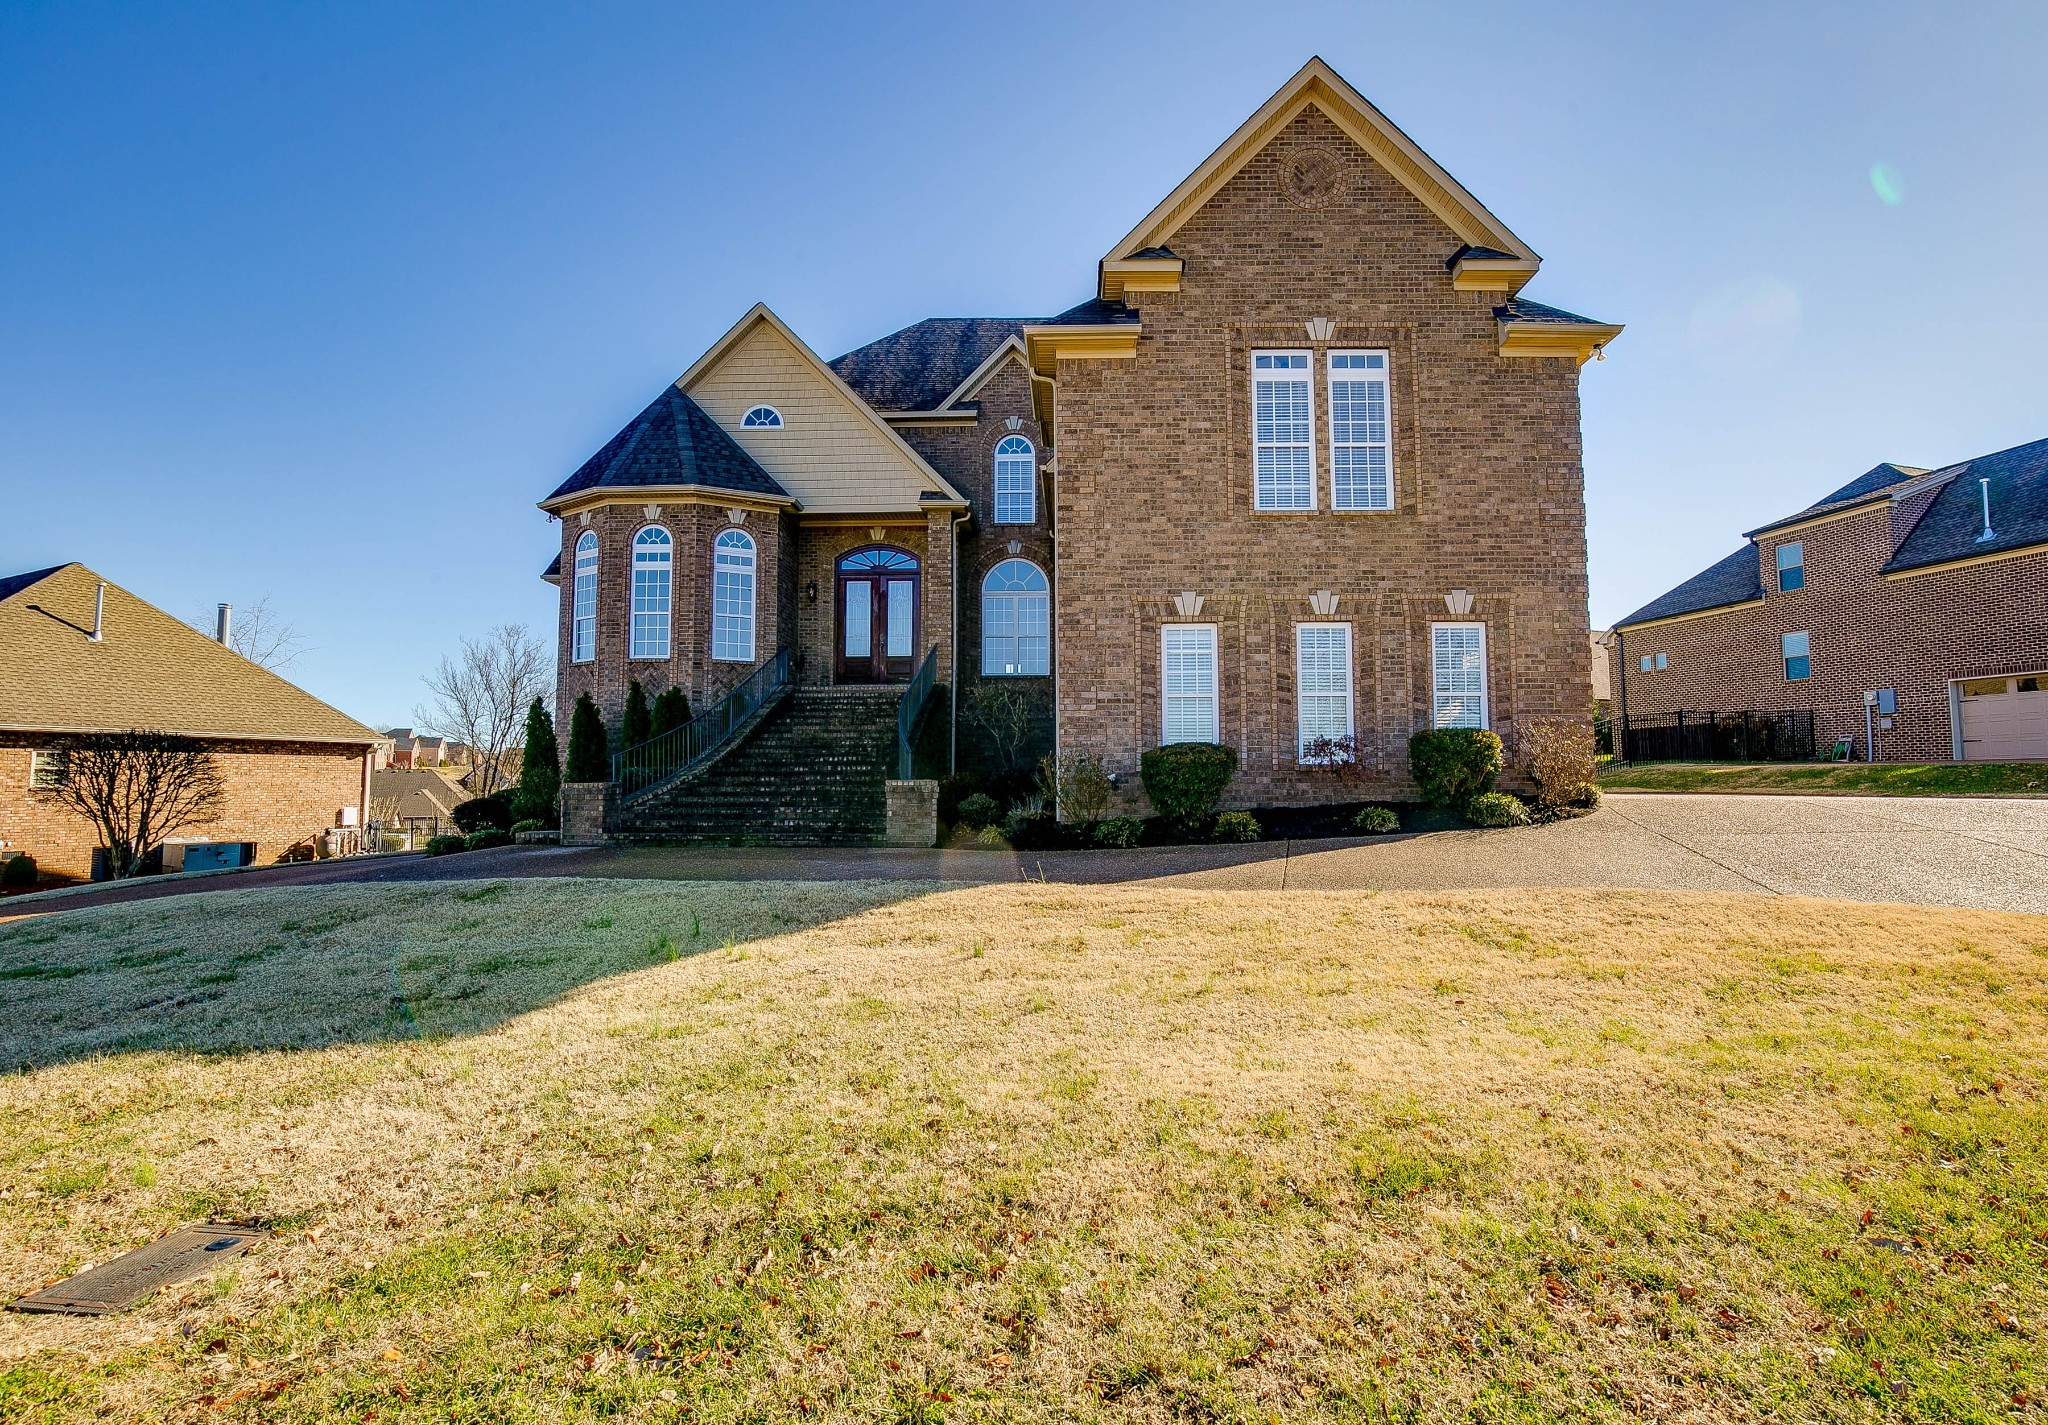 1553 Stokely Lane, Old Hickory, TN 37138 - Old Hickory, TN real estate listing